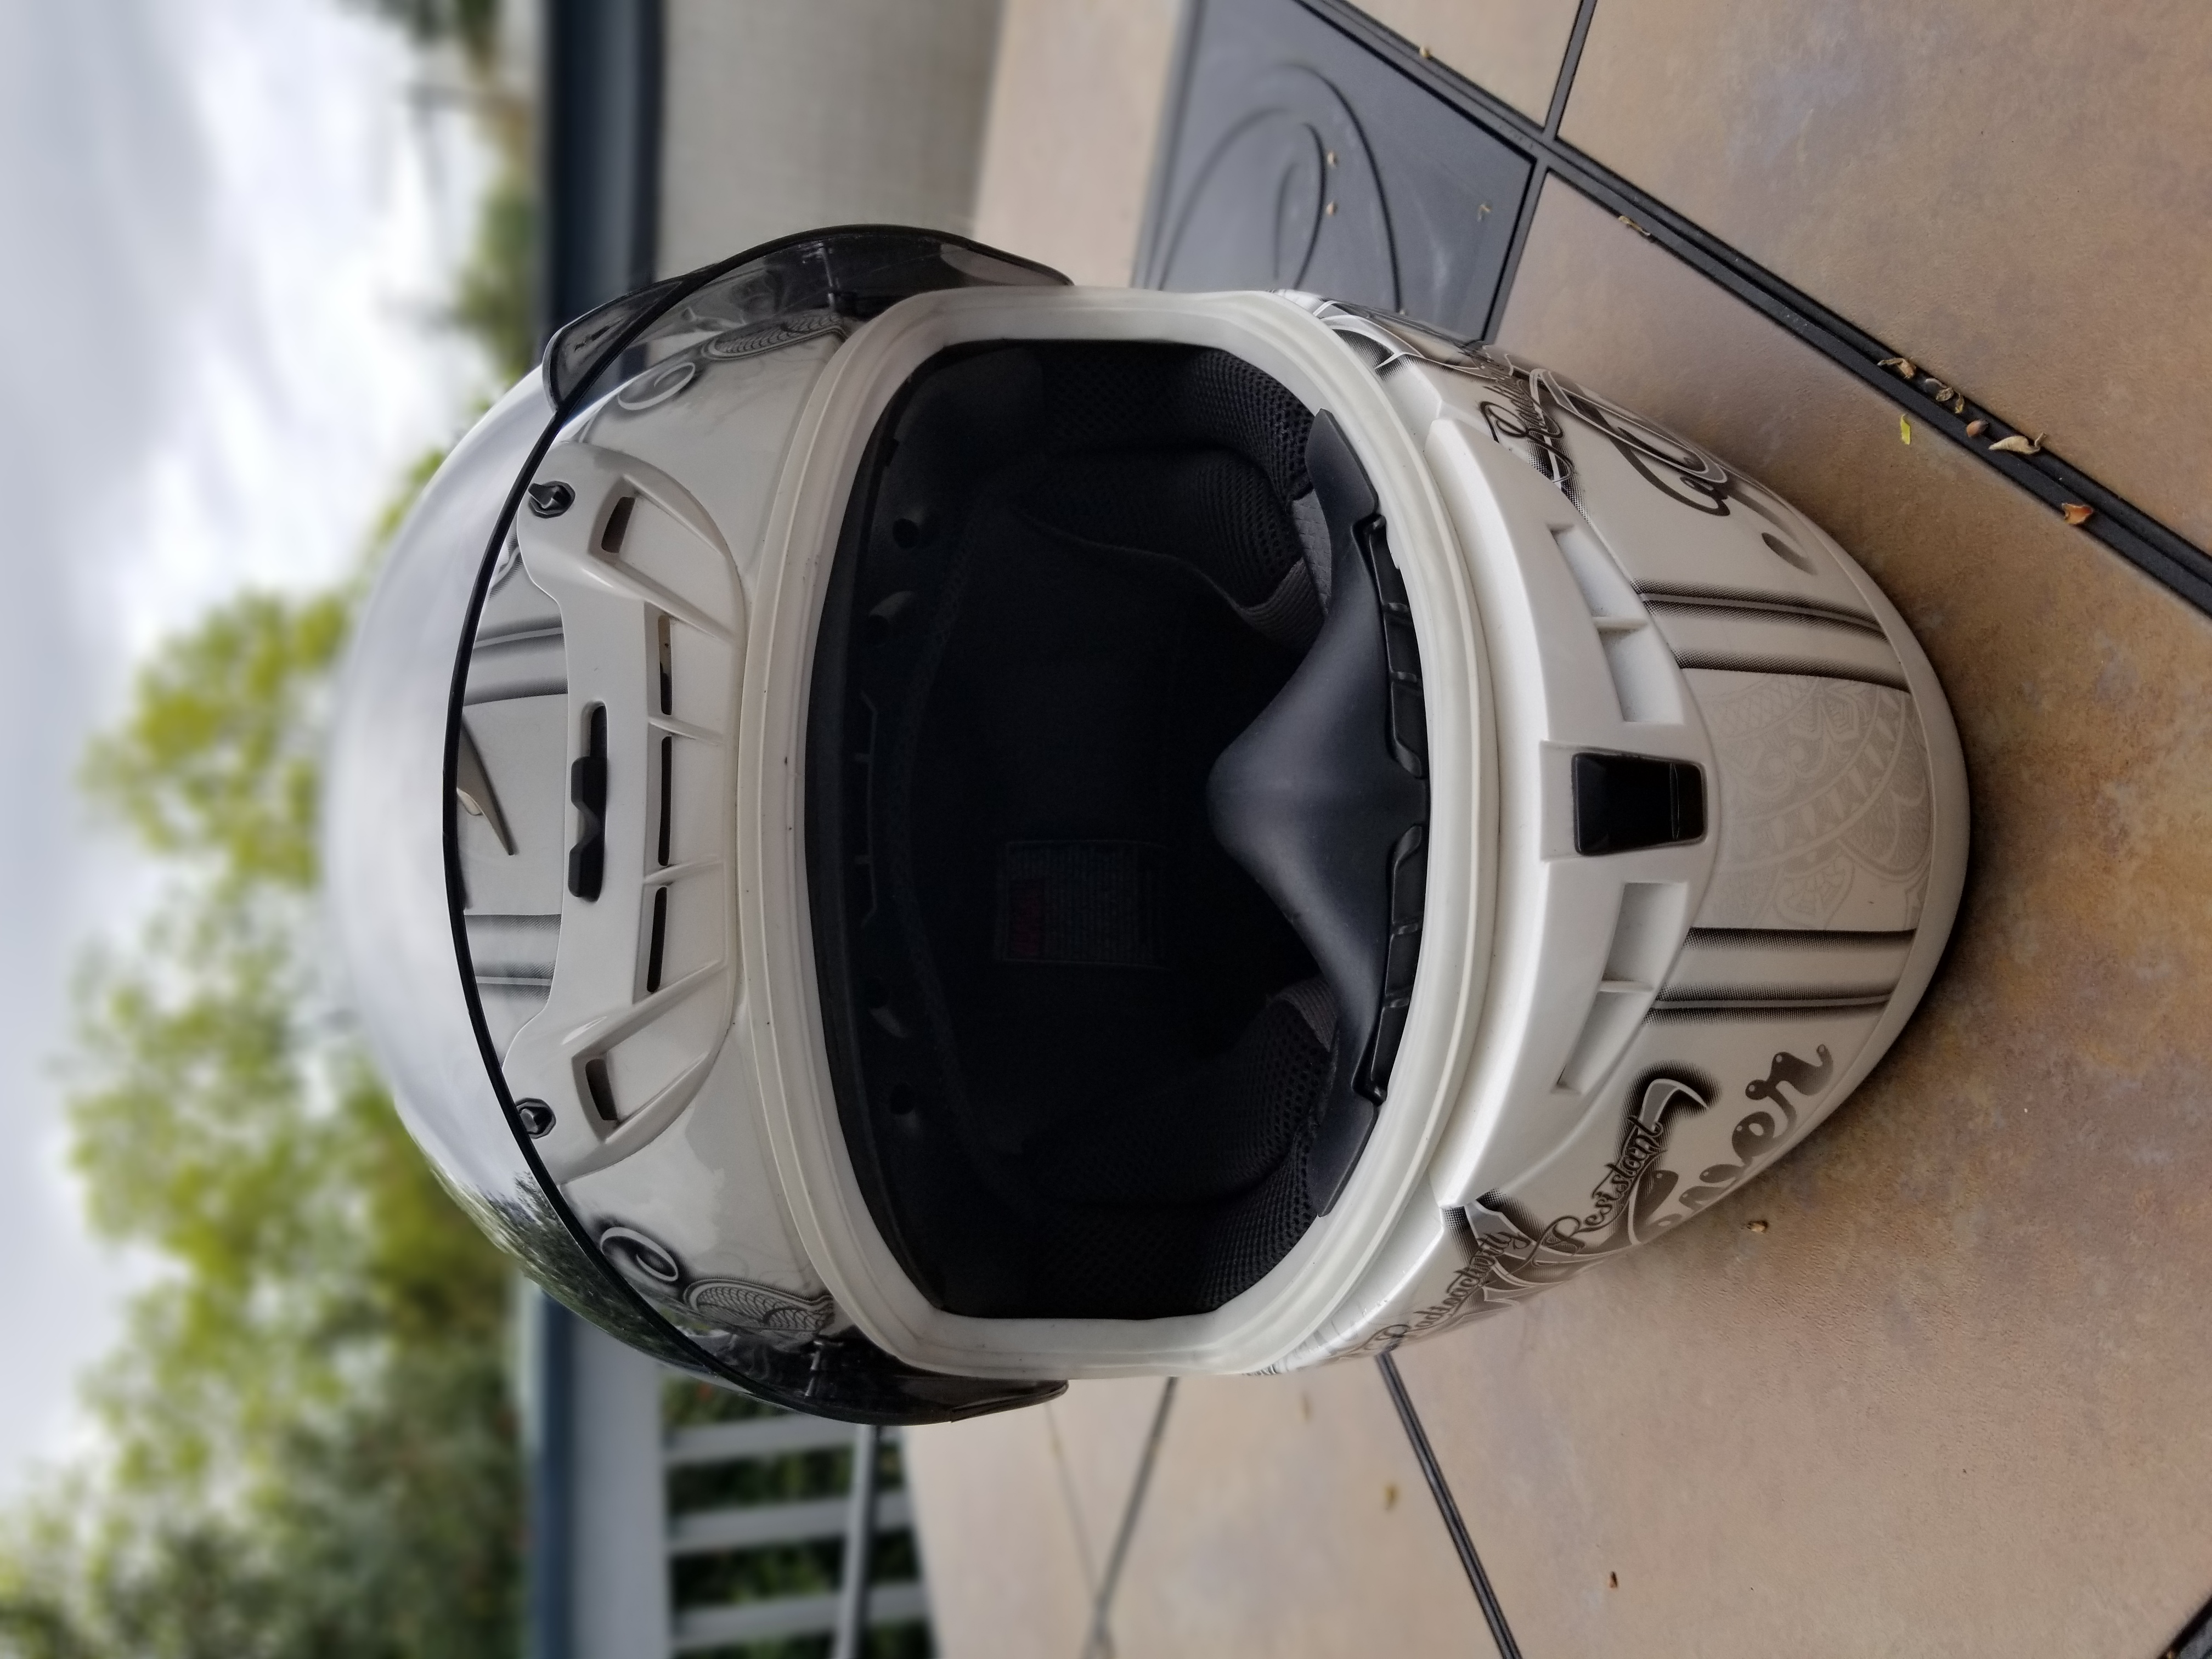 Scorpion Ann EXO-400 Street Motorcycle Helmet - Pearl White Extra Small XS-20190421_115457_1560210140540.jpg